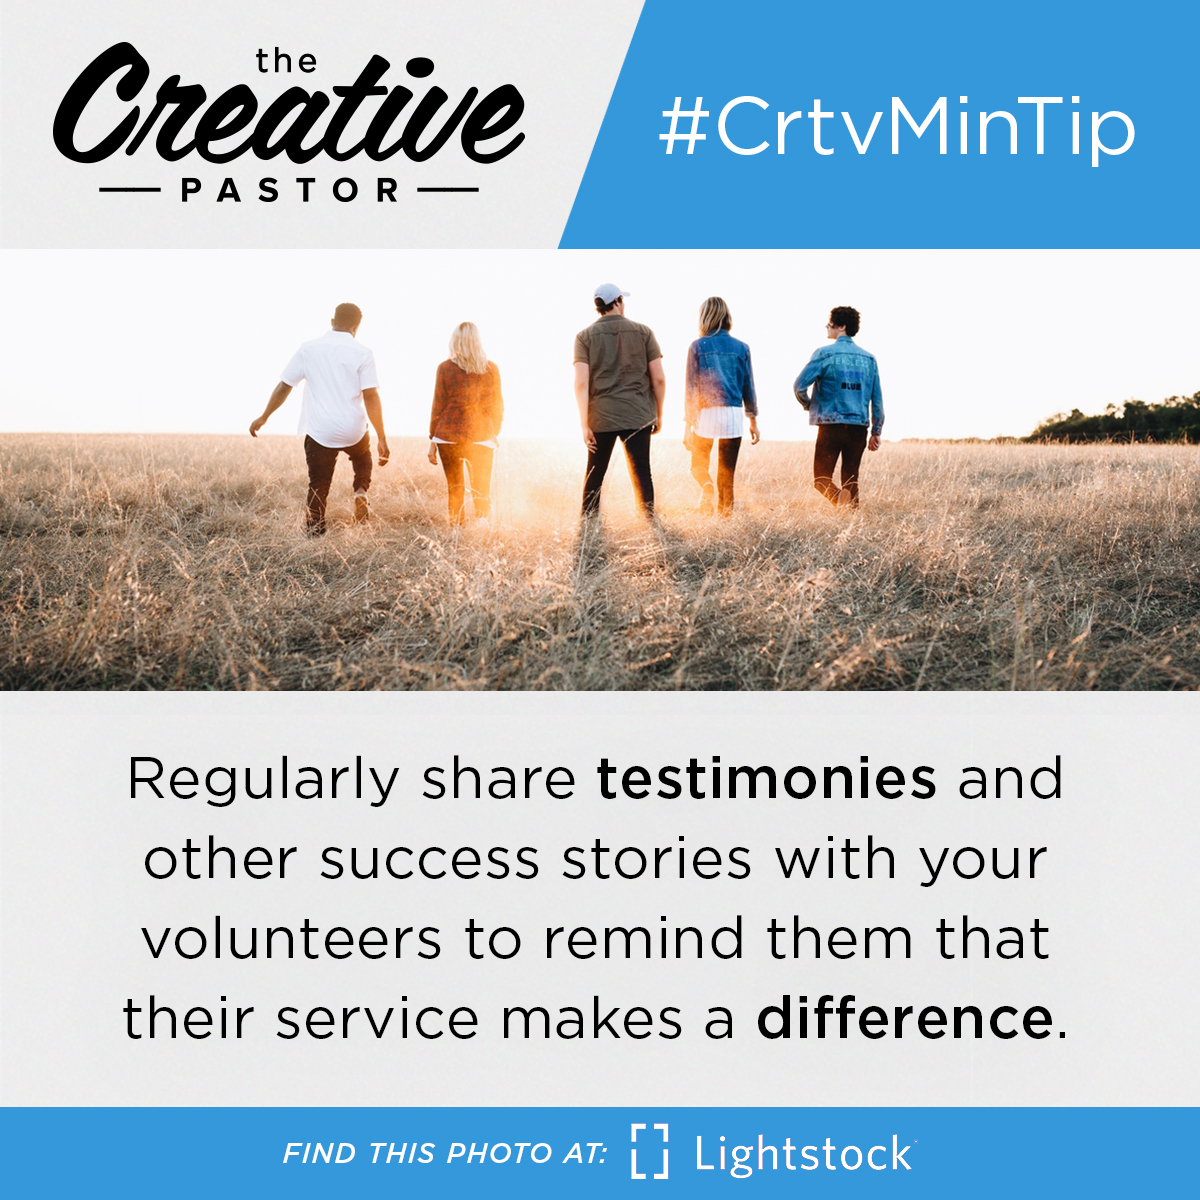 #CrtvMinTip: Regularly share testimonies and other success stories with your volunteers to remind them that their service makes a difference.